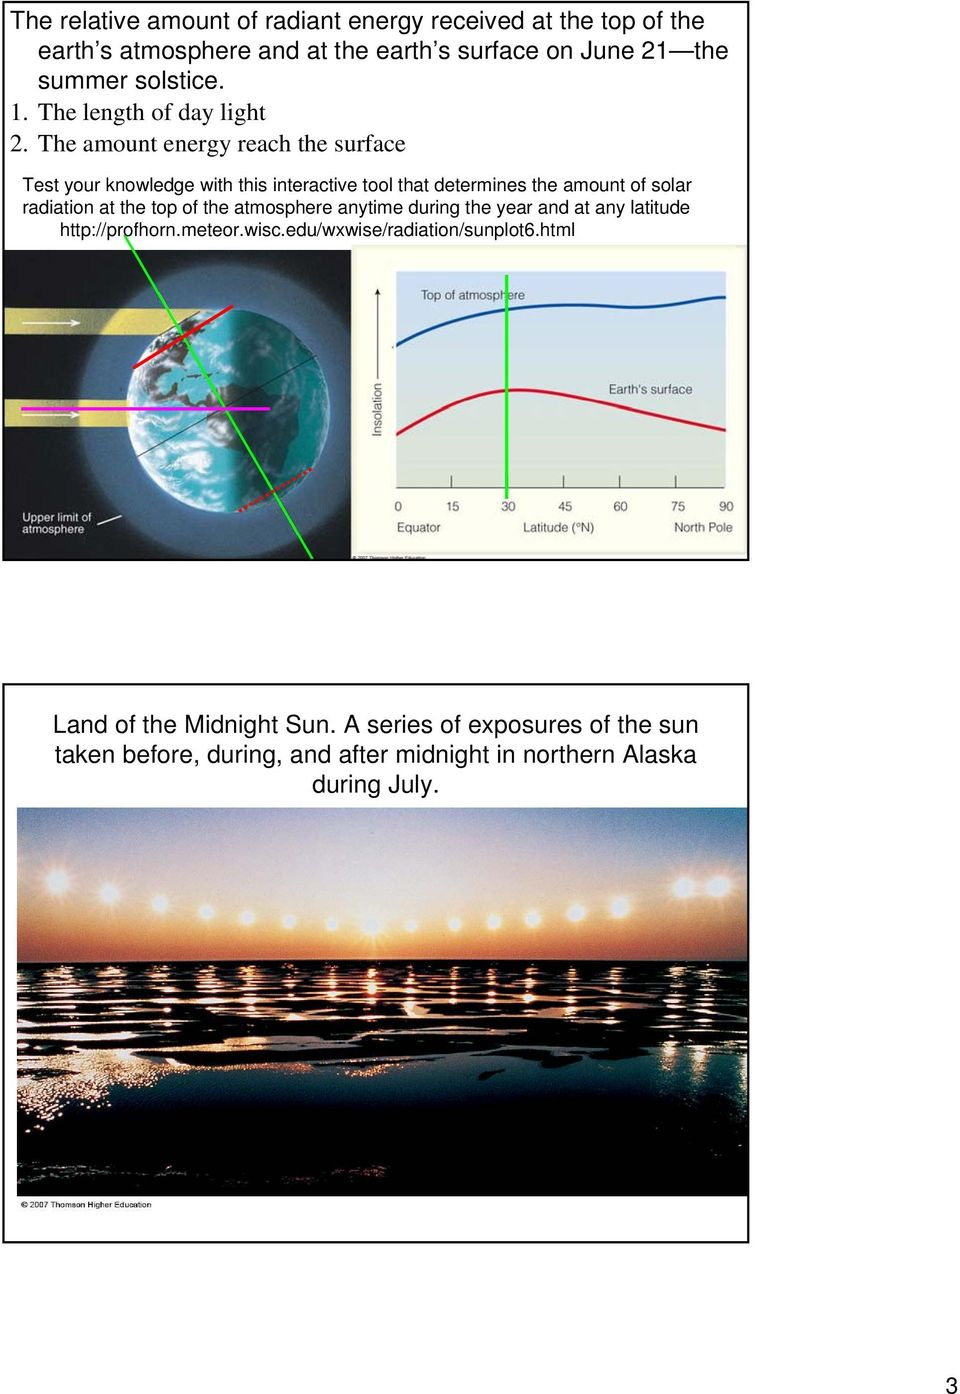 The amount energy reach the surface Test your knowledge with this interactive tool that determines the amount of solar radiation at the top of